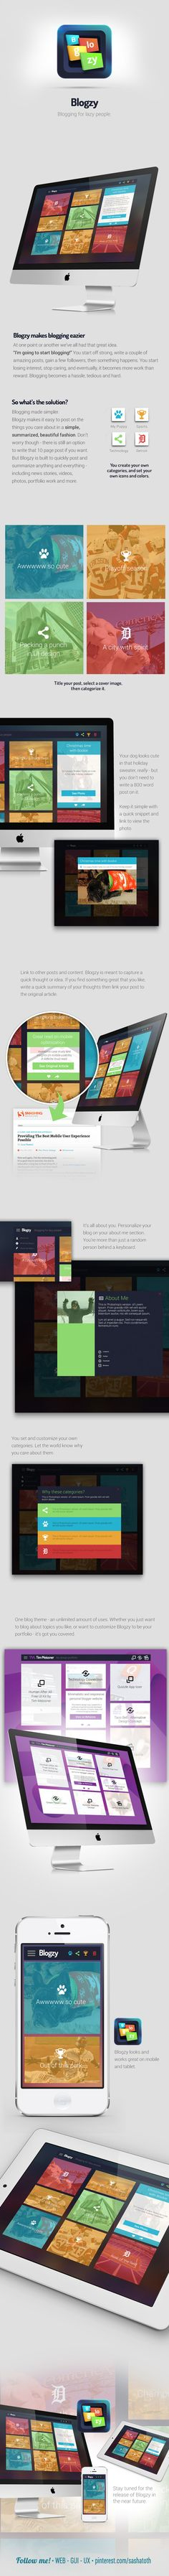 Blogzy | Blogzy - blogging for lazy people. Blogzy makes it easy to post about the things you care about in a simple, summarized, beautiful fashion. You set your own categories and topics and customize the site with your own style. | Designer: Tim Meissner